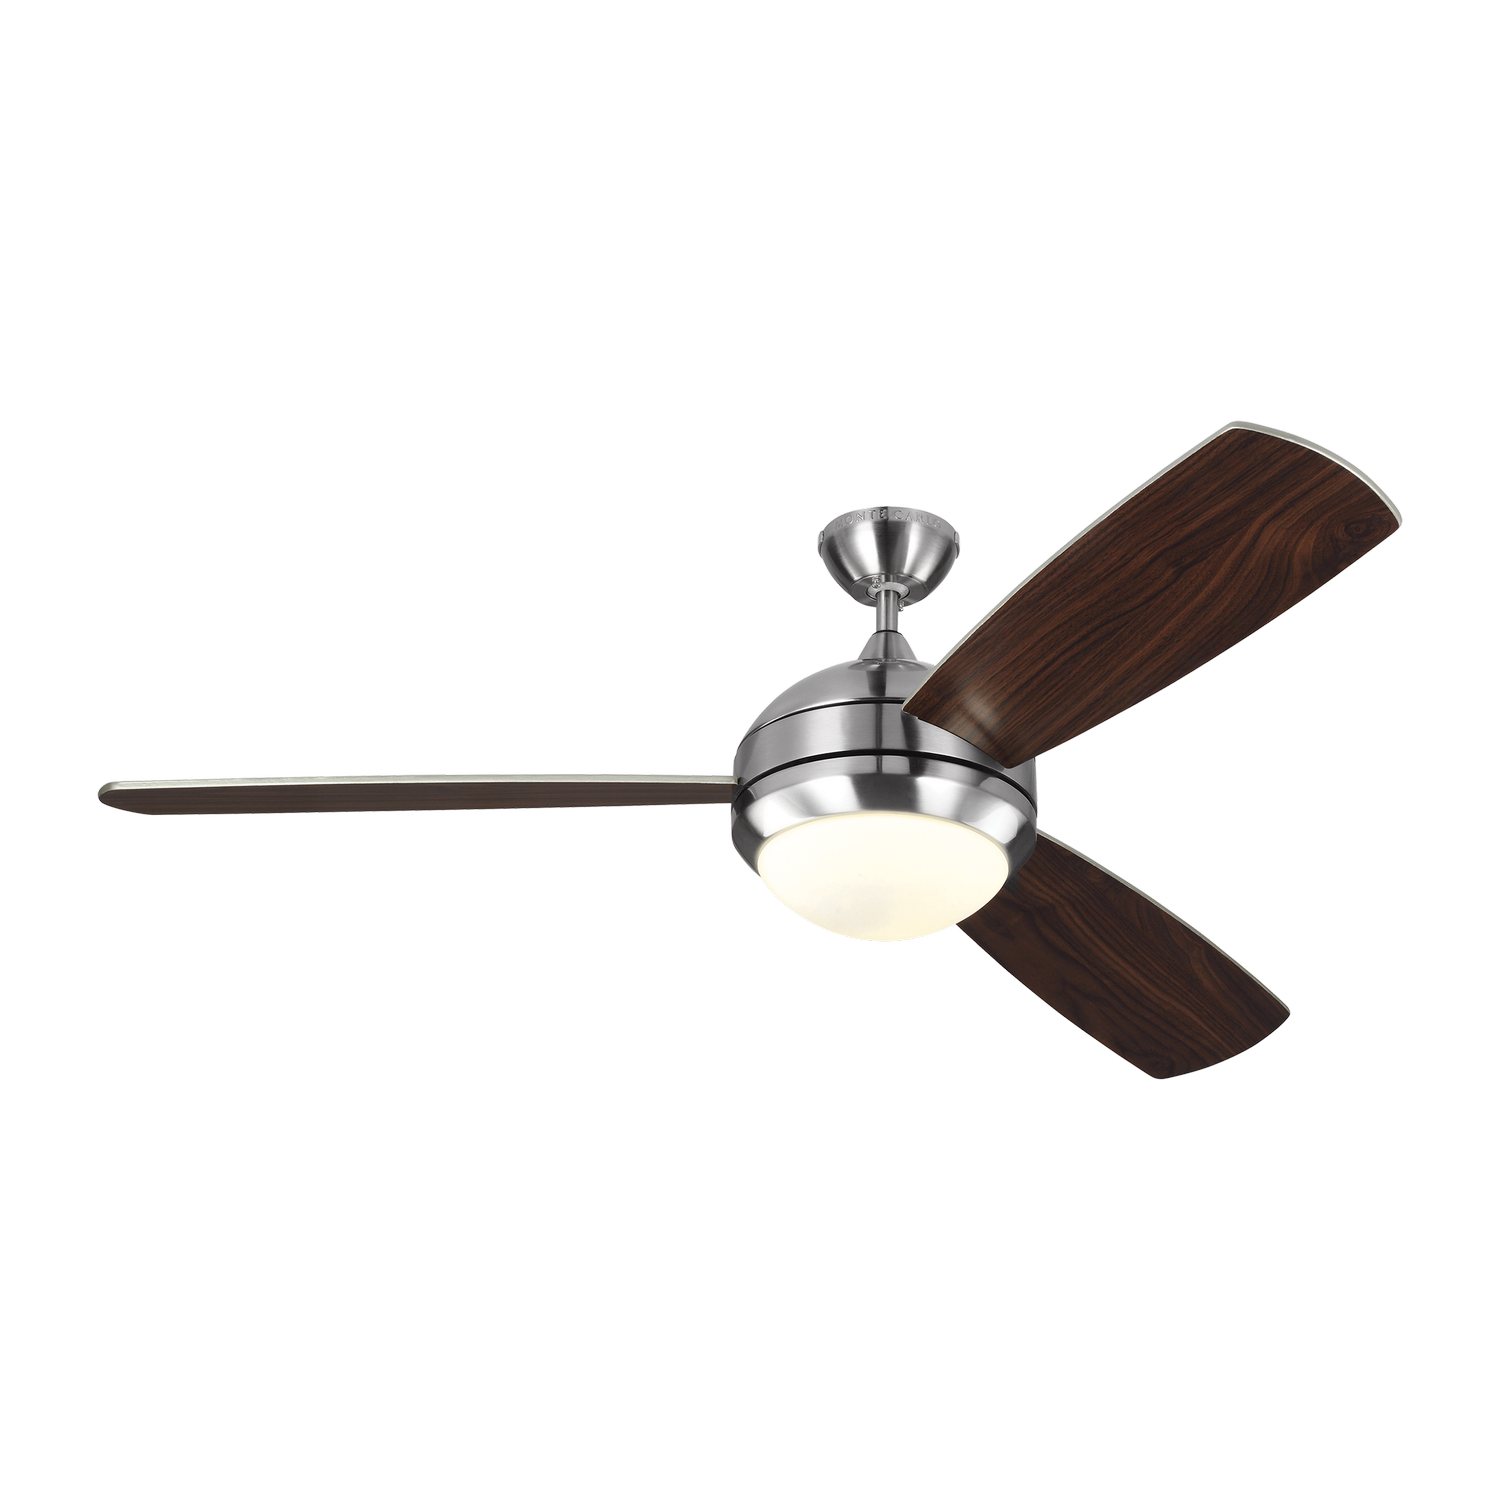 58 inchCeiling Fan from the Discus Trio Max collection by Monte Carlo 3DIR58BSD V1